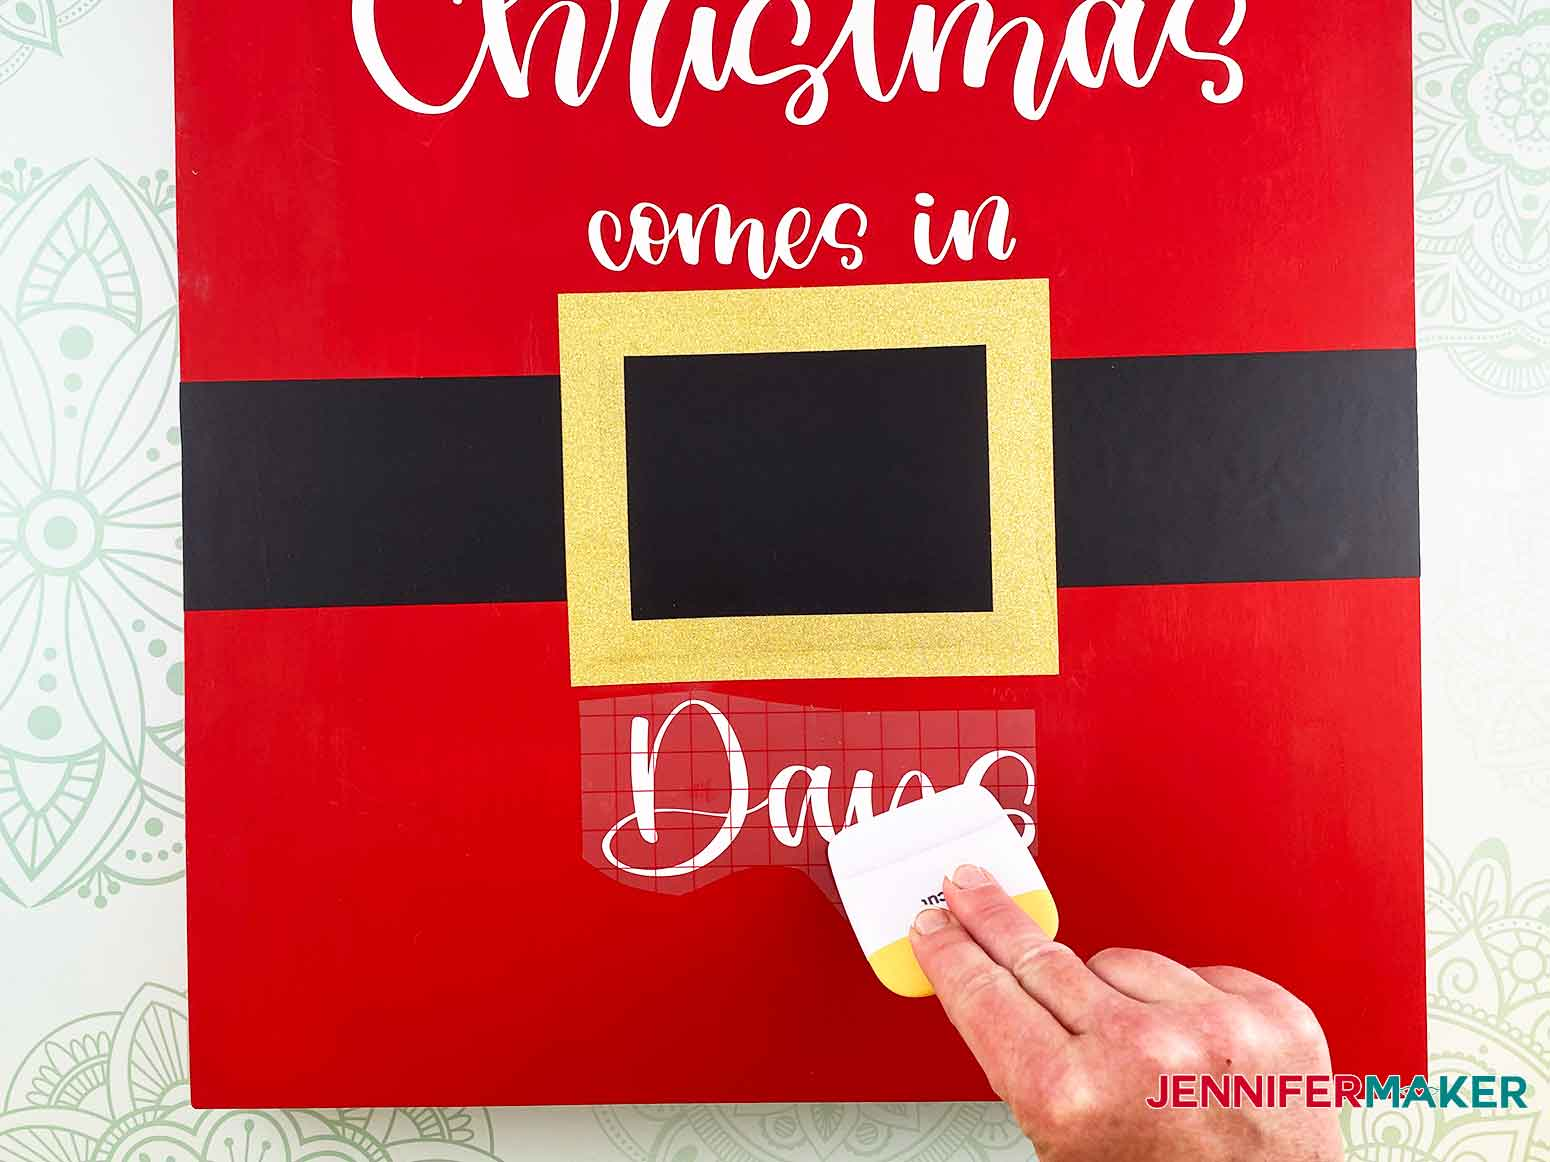 Center the word Days below the belt buckle for my Christmas Countdown Sign